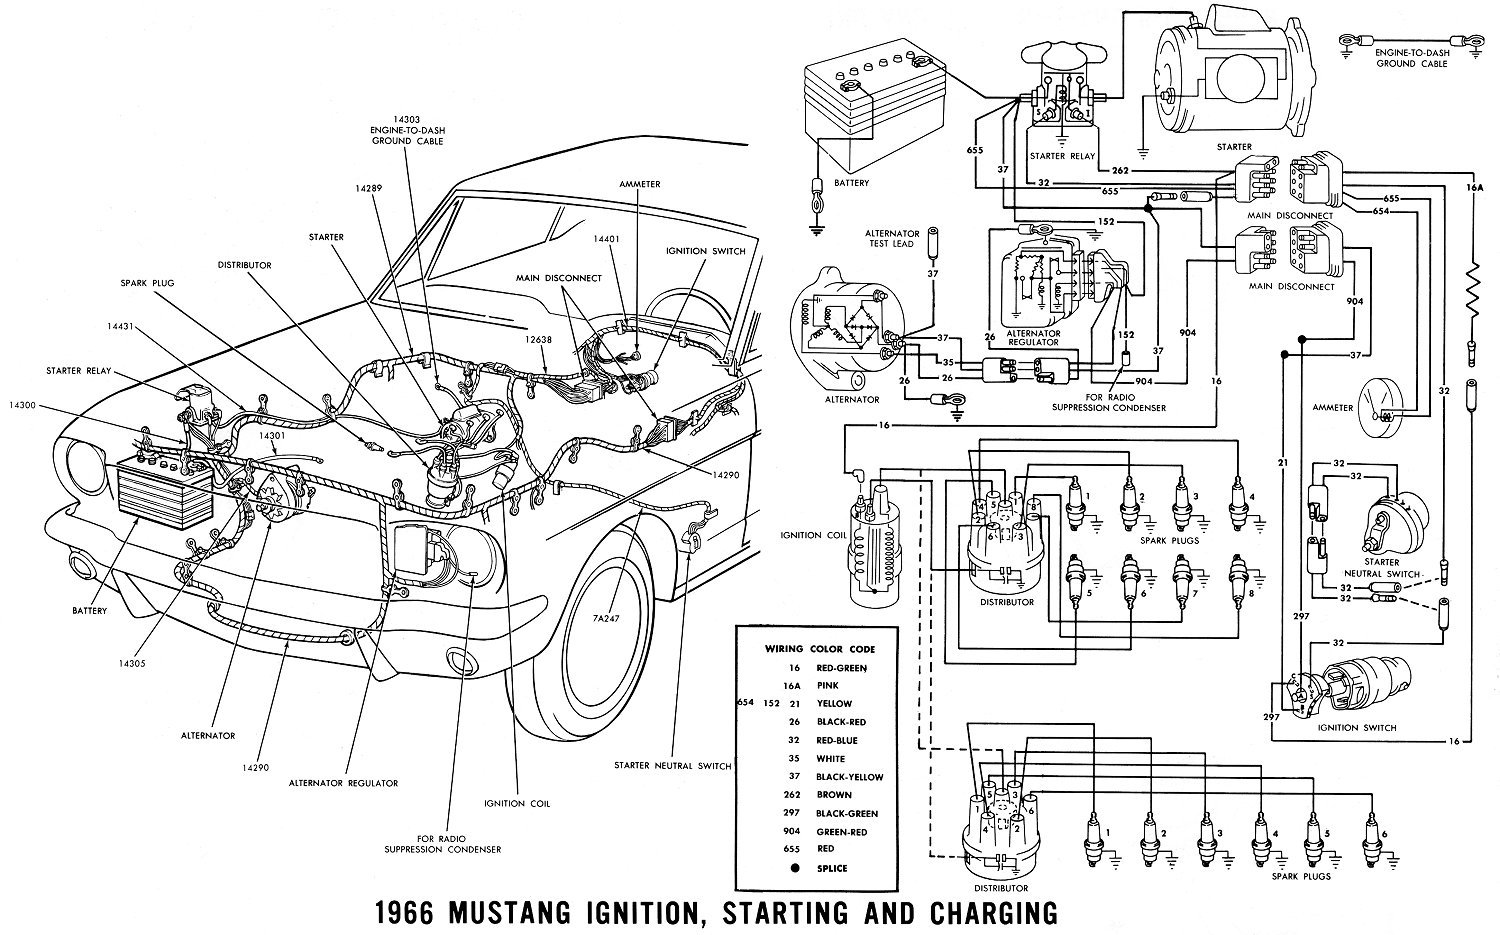 89327 1966 Mustang Ignition Switch Diagram What Pins What on simple street rod wiring diagram